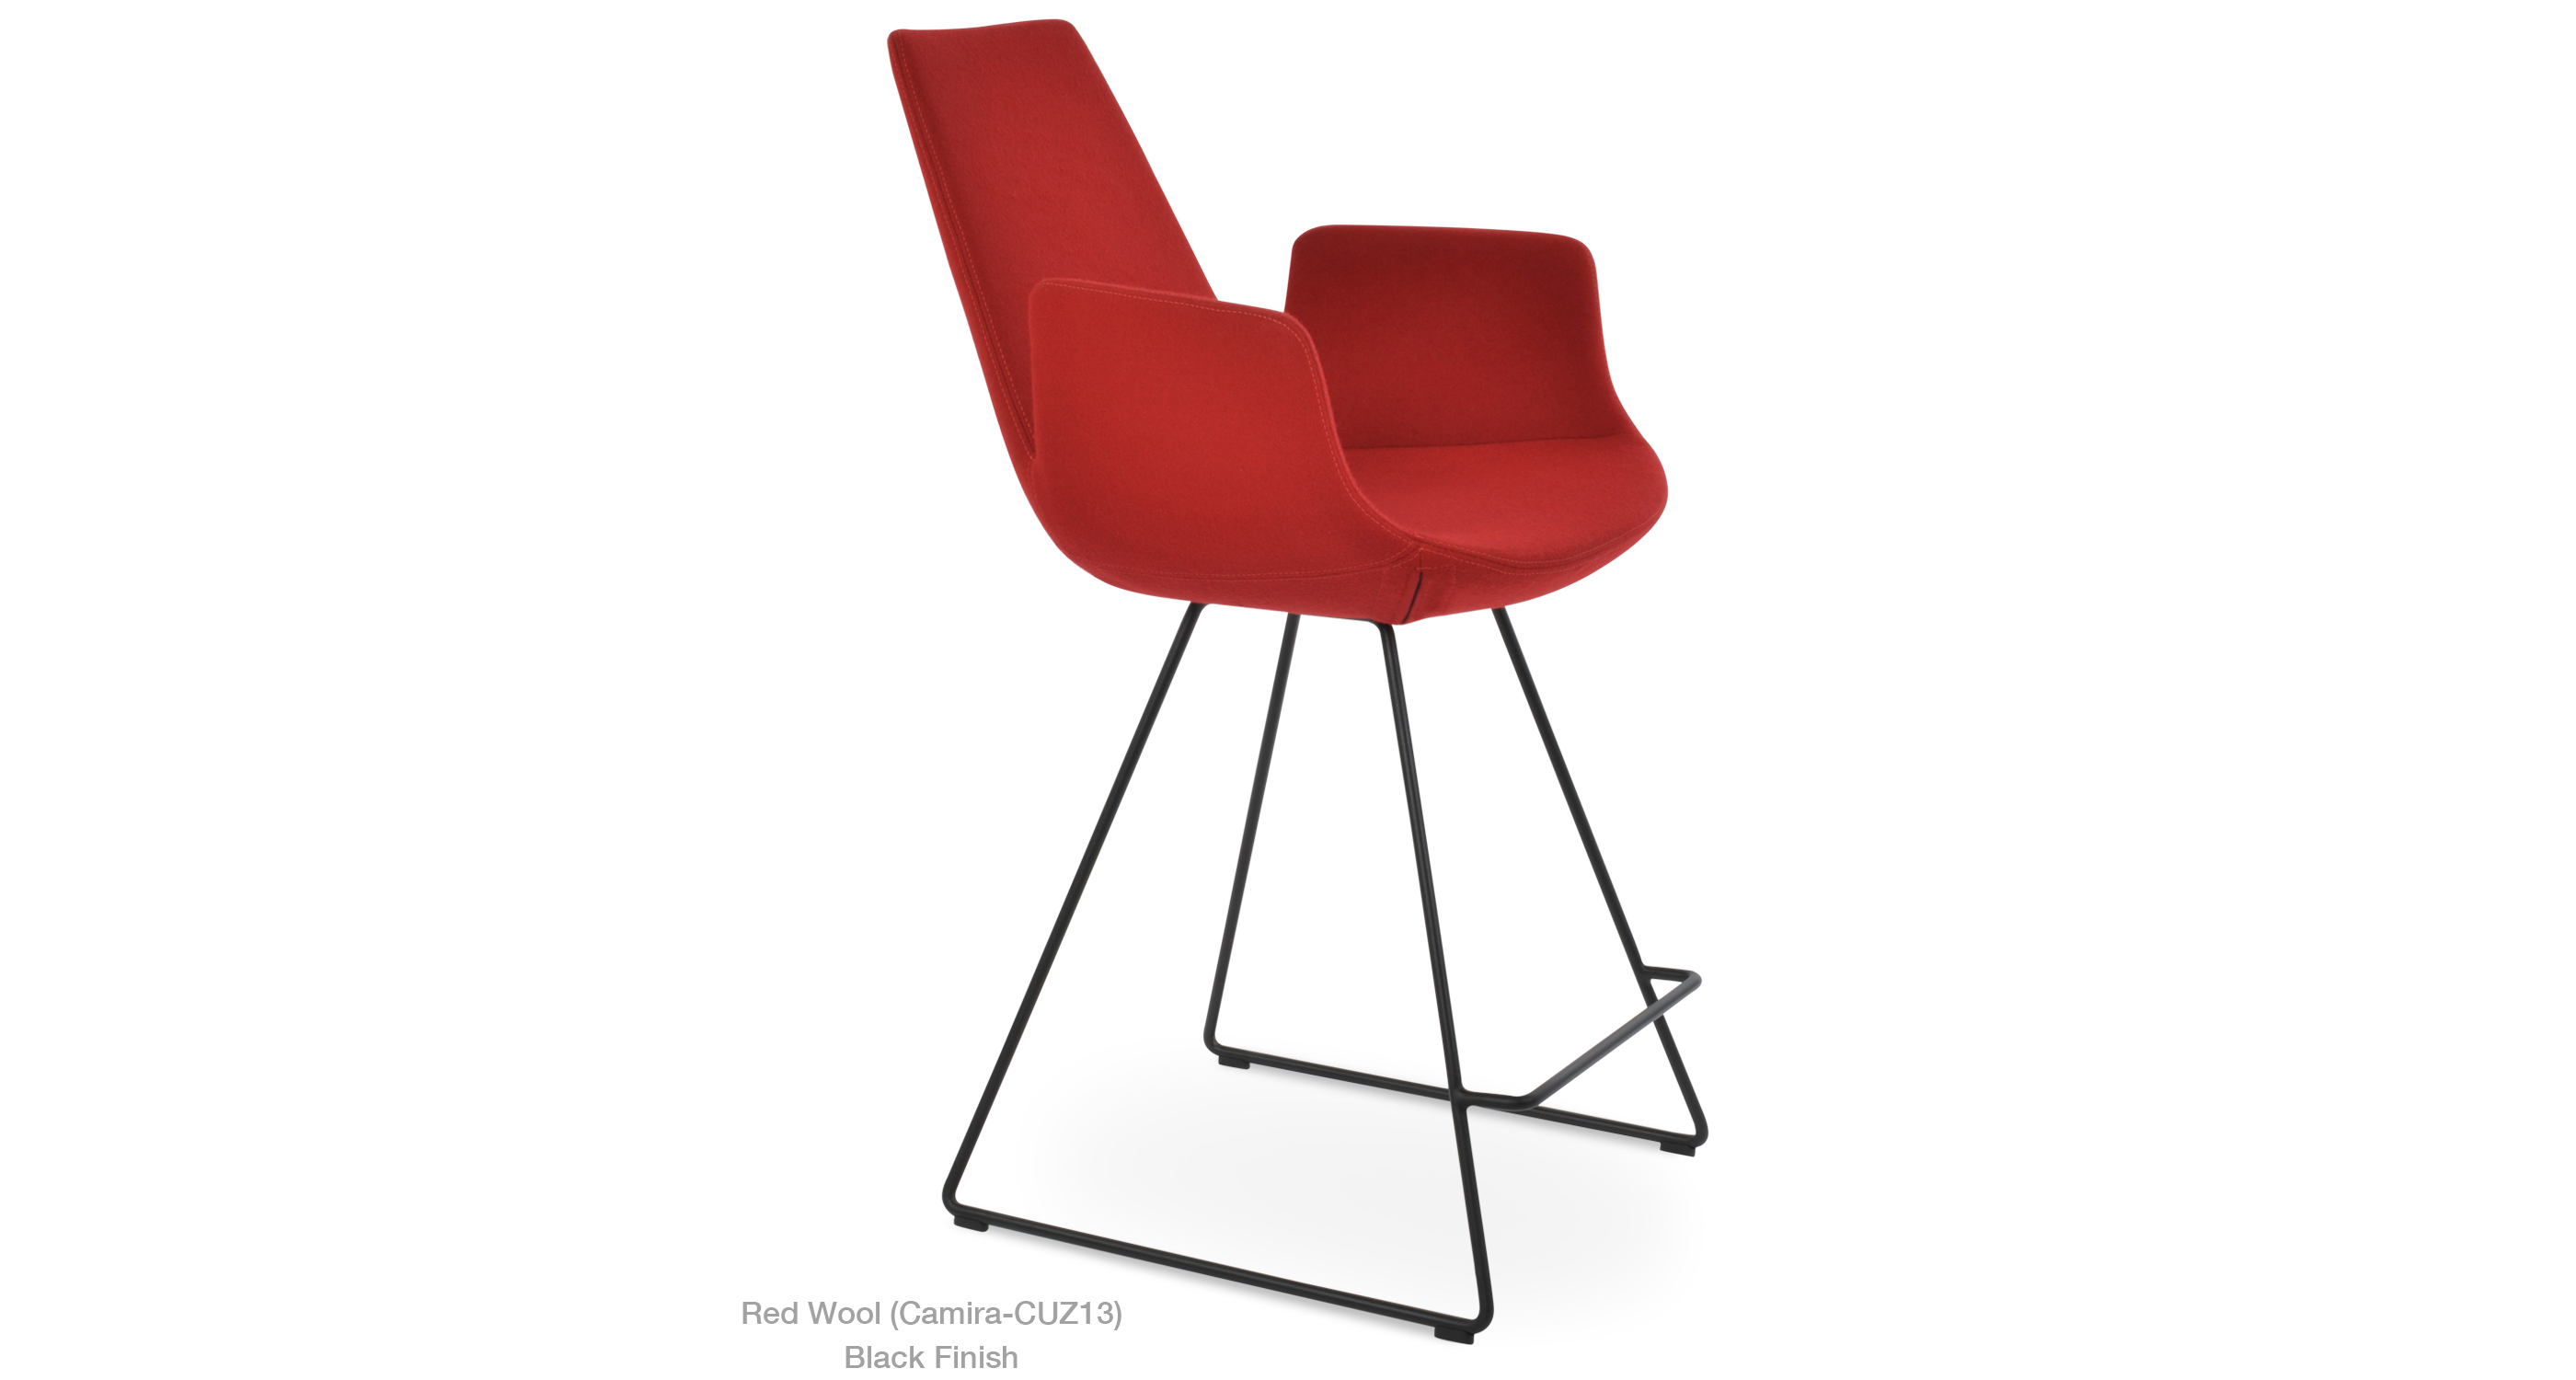 2020 03 05 Eiffel Arm Wire Camira Red